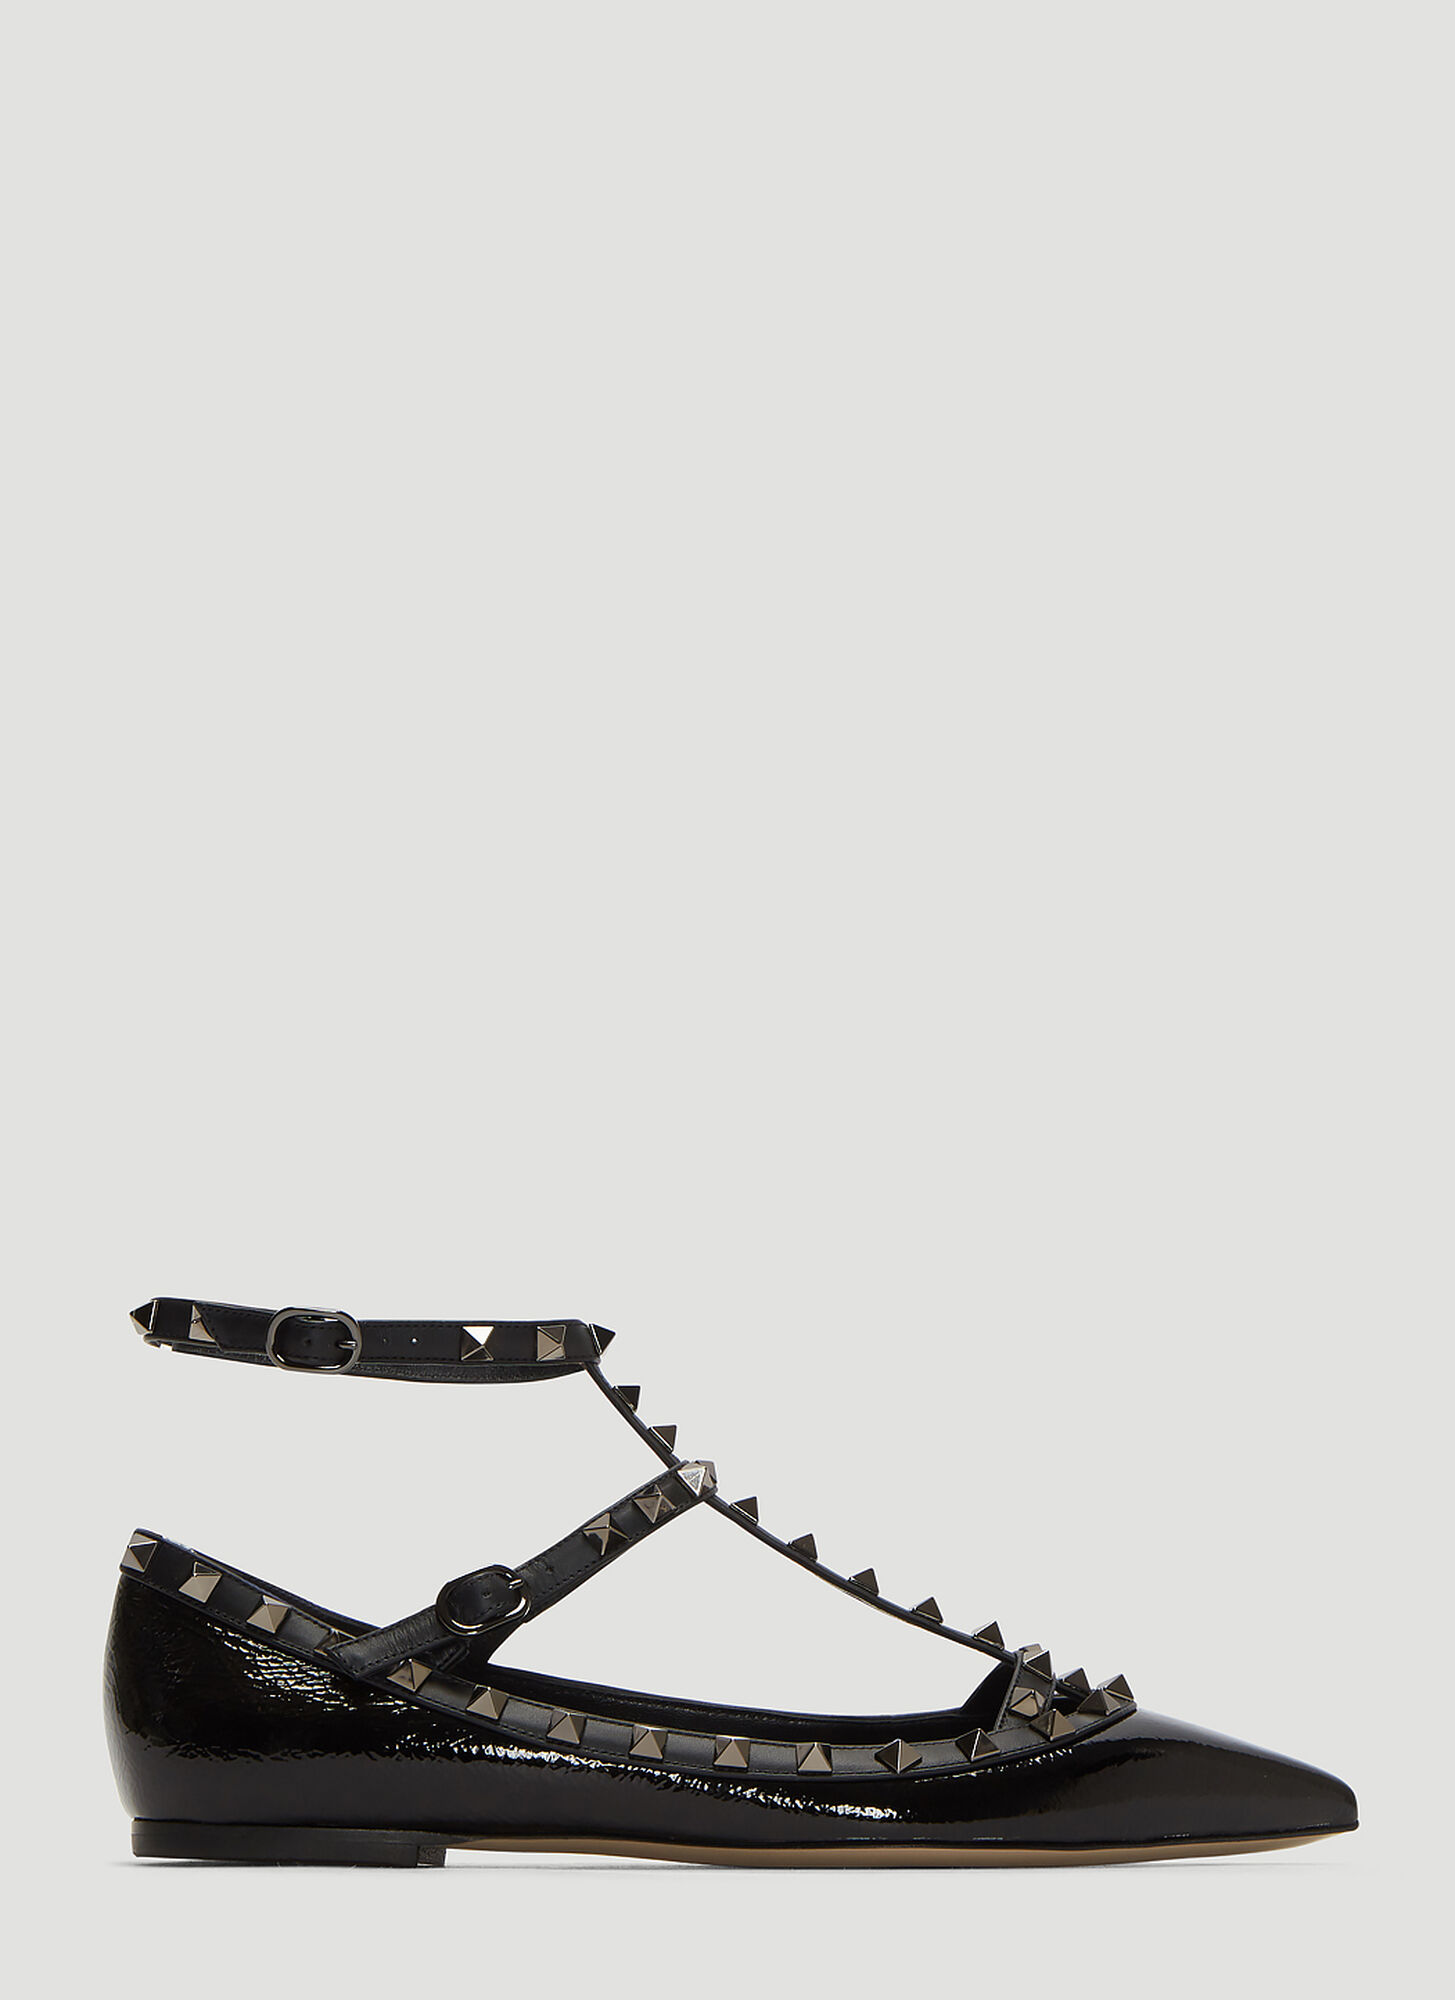 Valentino Rockstud Ballerina Pumps in Black